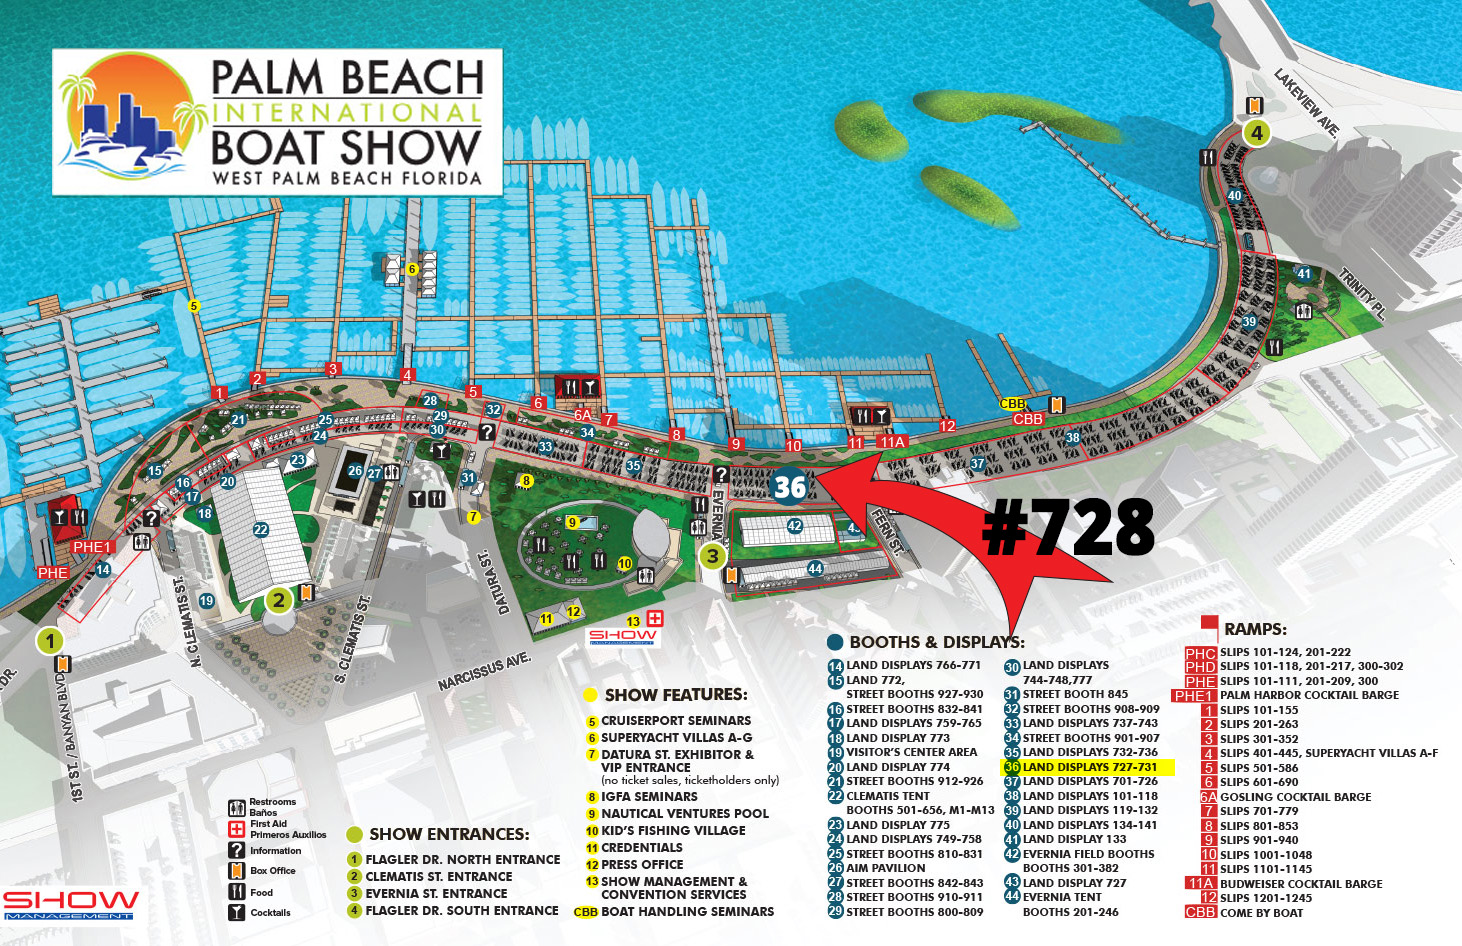 Palm Beach Boat Show NEWS Amp EVENTS